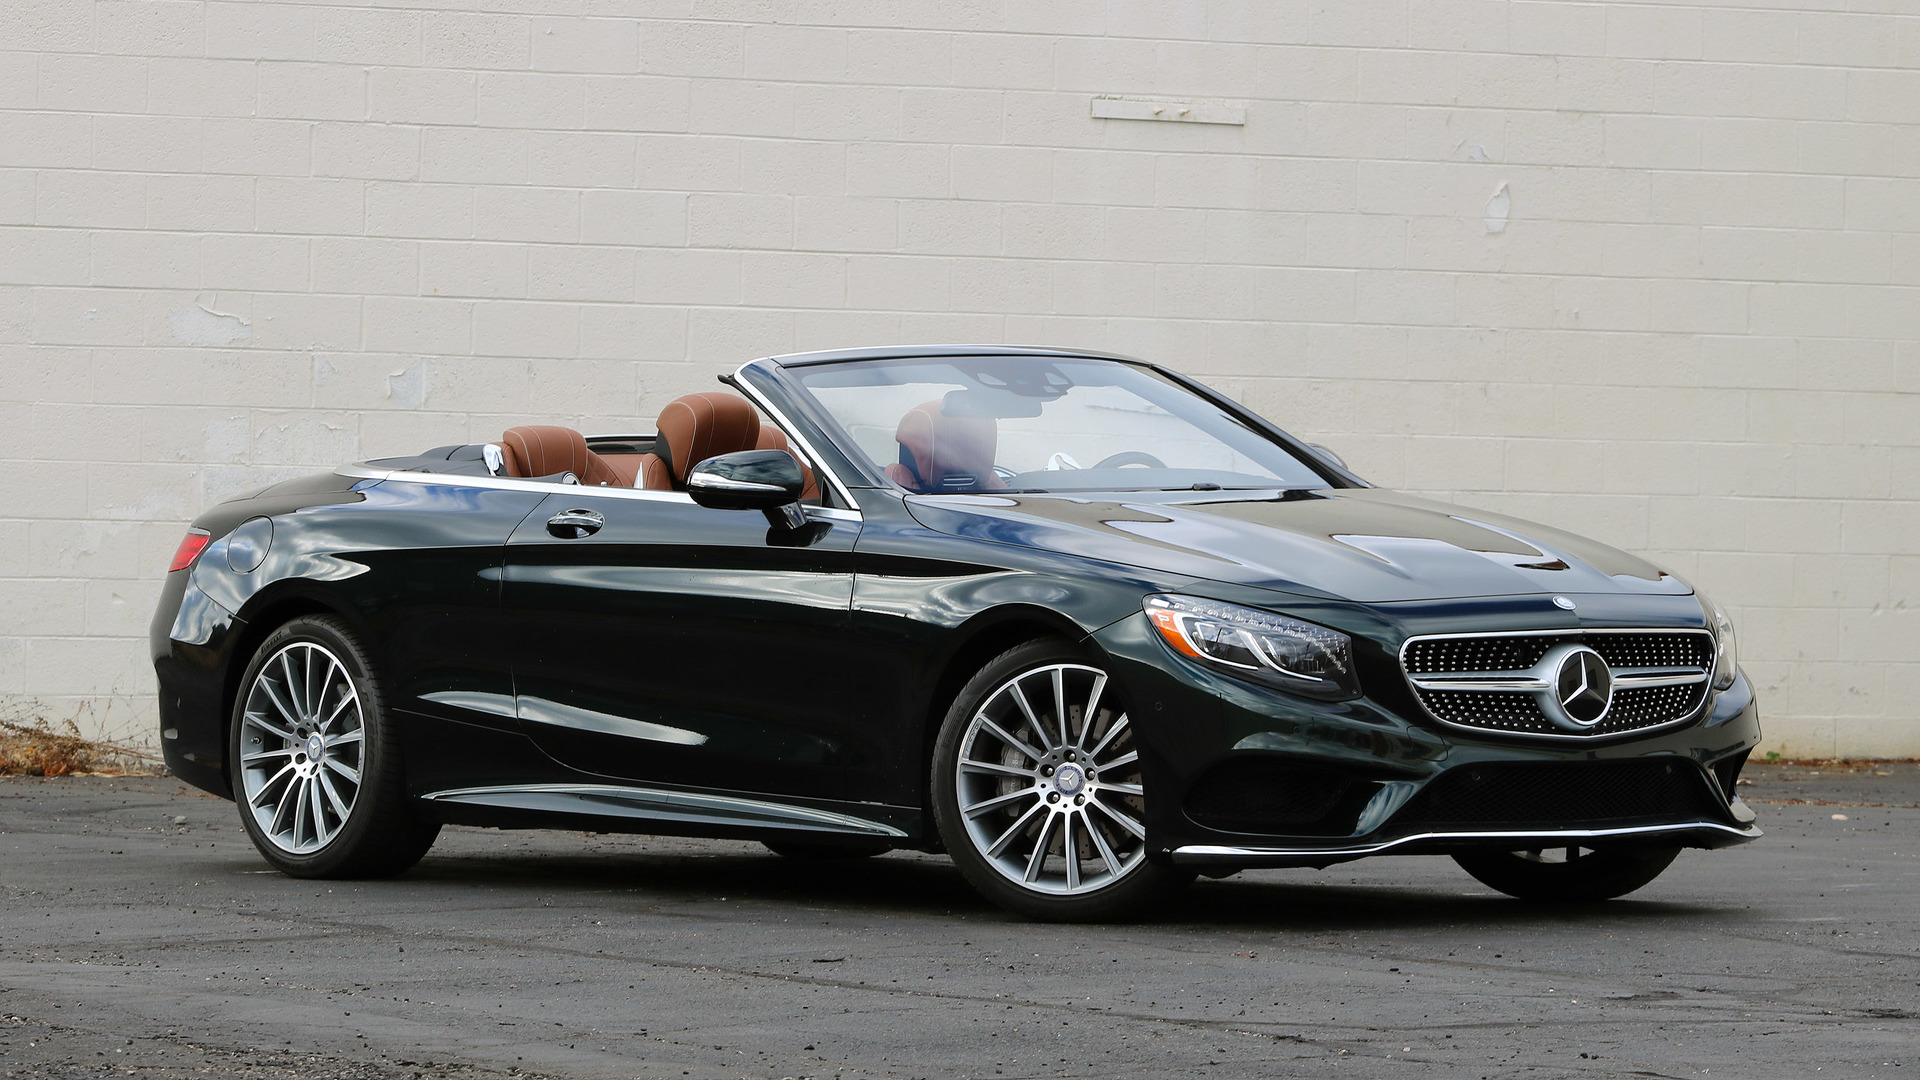 2017 mercedes benz s550 cabriolet review all the luxury for What country makes mercedes benz cars